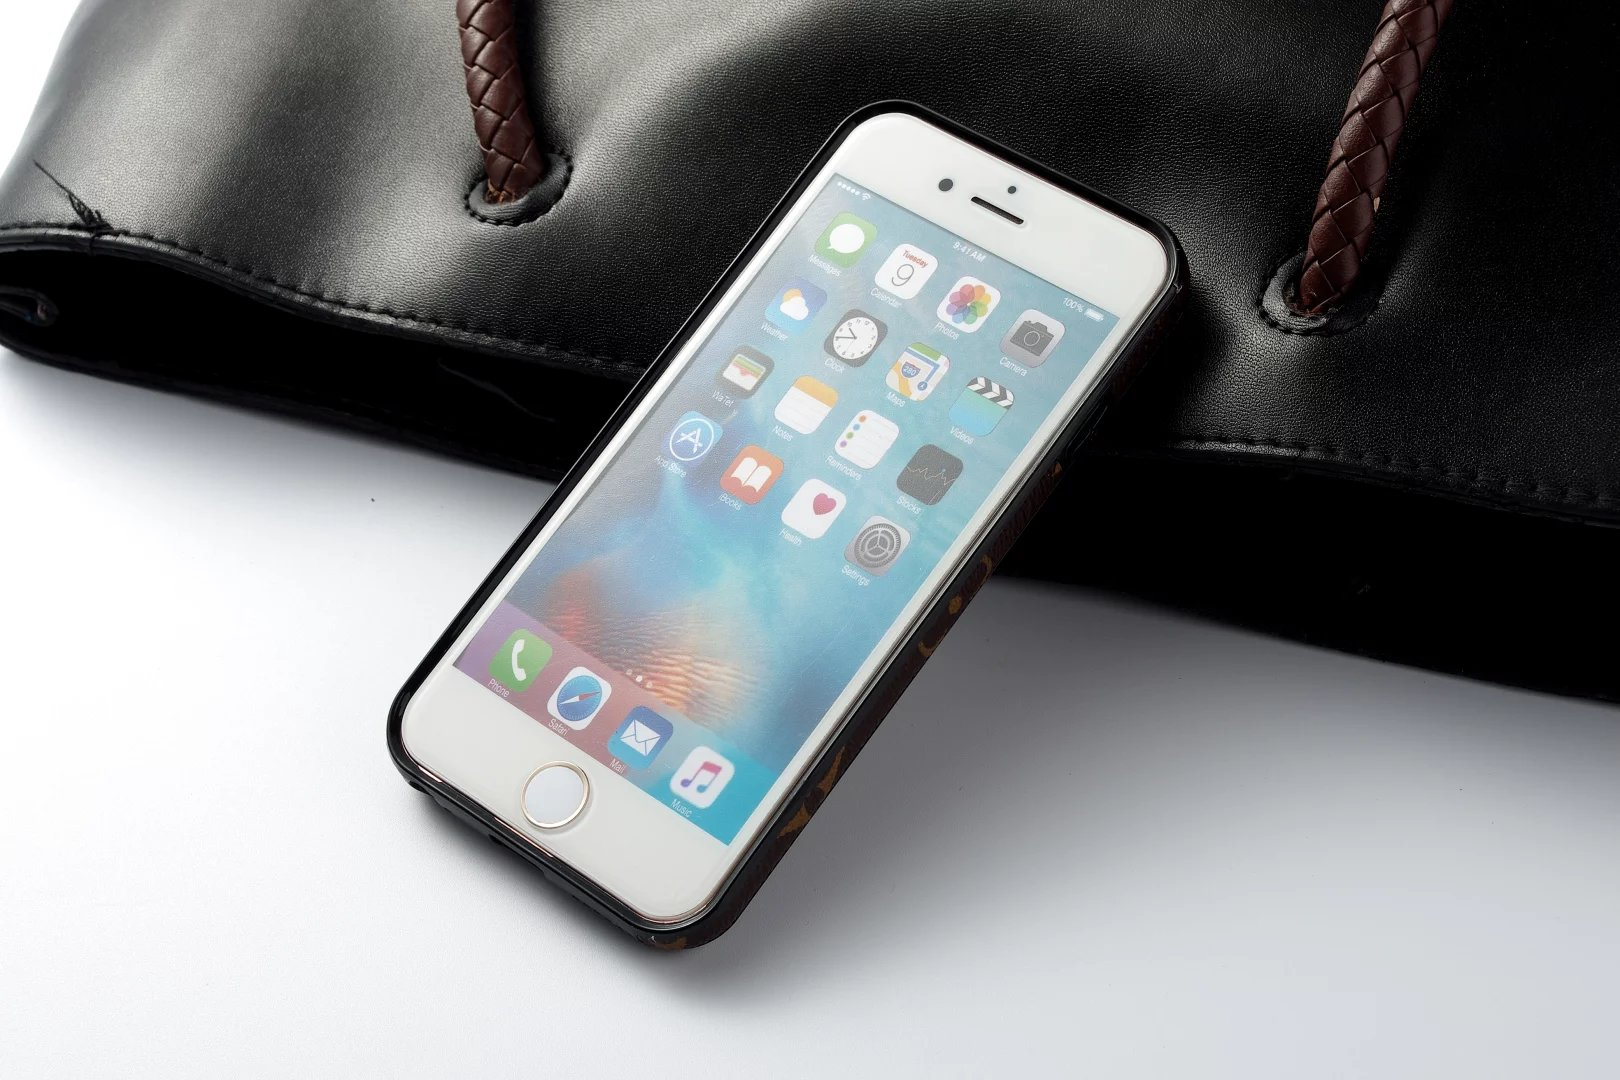 iphone hülle leder eigene iphone hülle Burberry iphone 8 Plus hüllen marken handyhüllen iphone 8 Plus hüllen i iphone 8 Plus smartphone cover gestalten handy tasche iphone 8 Plus leuchtende iphone hülle